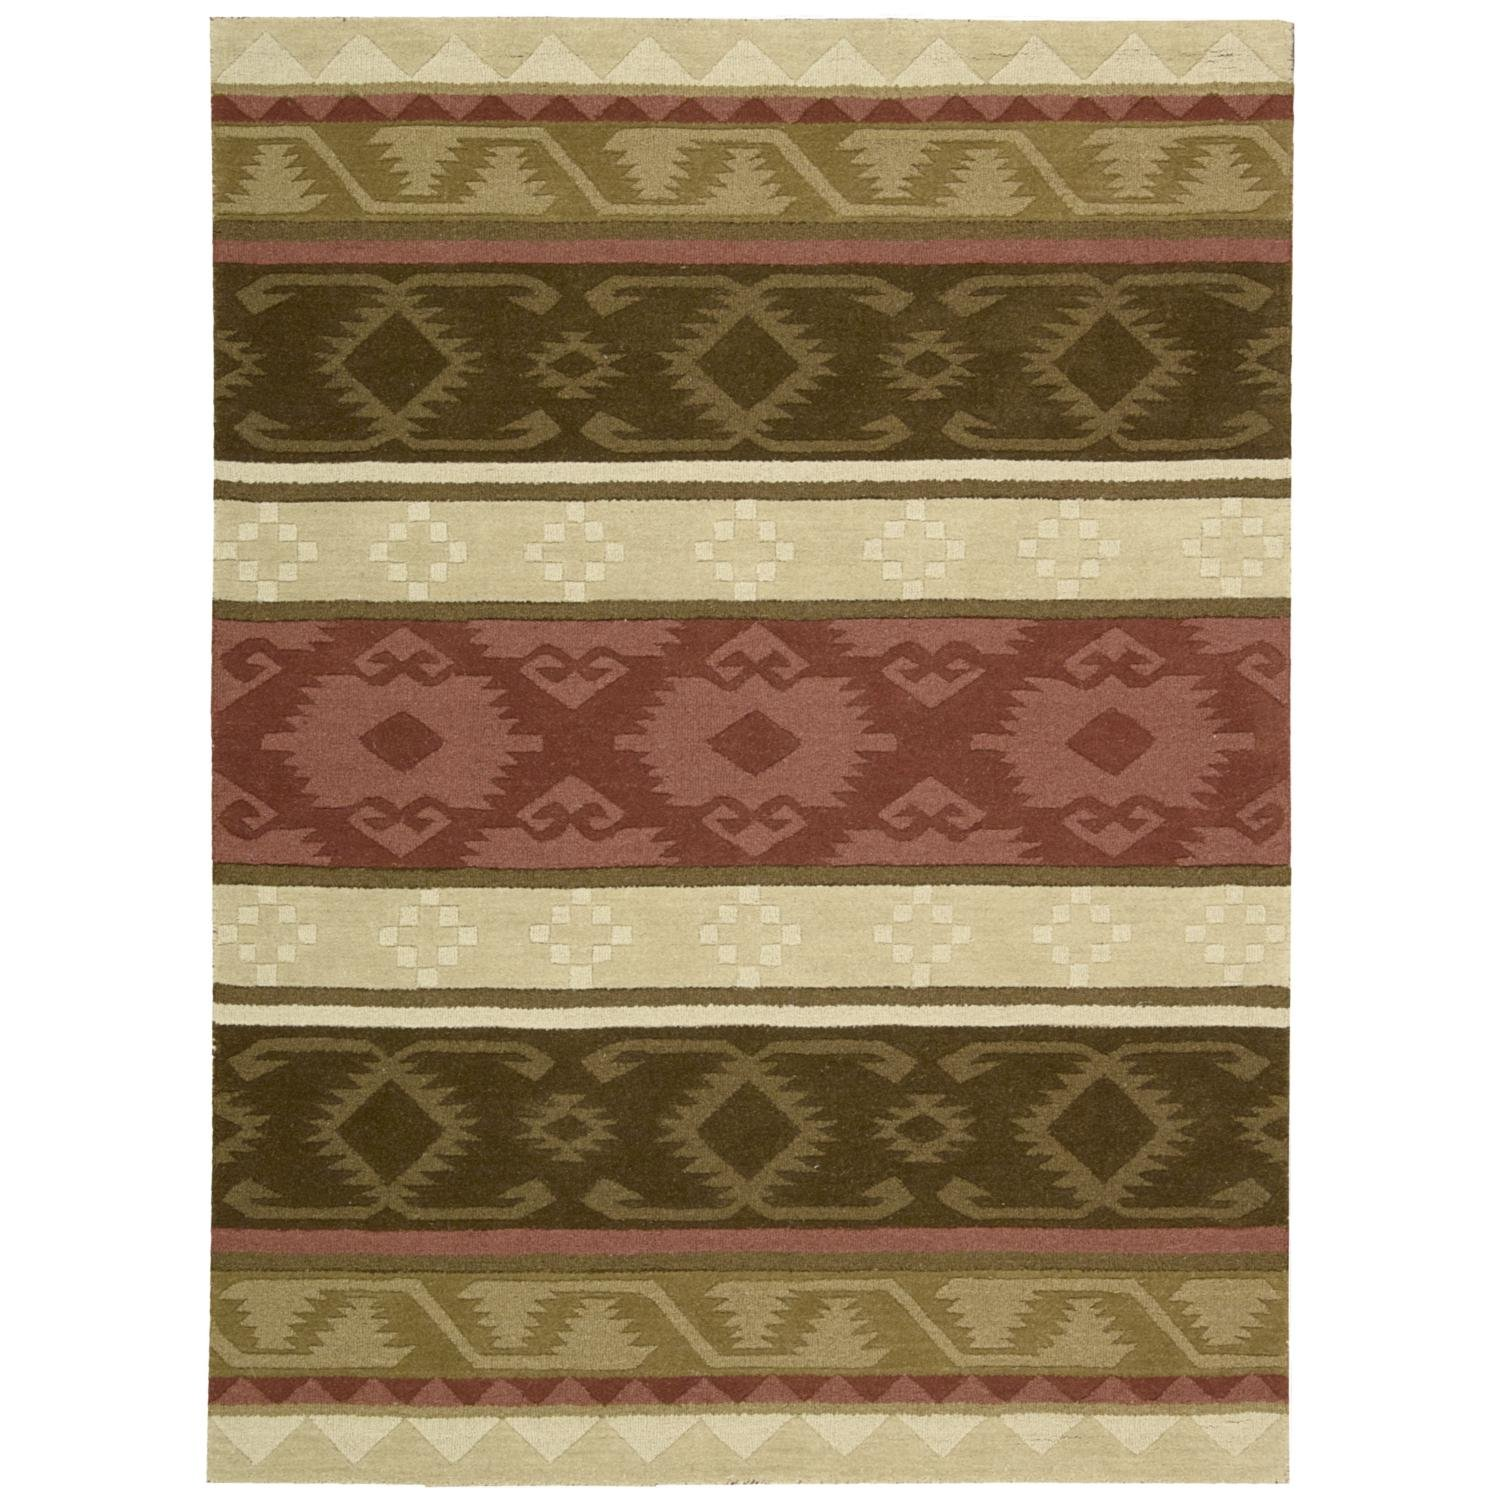 Nourison India House (IH85) Espre Rectangle Area Rug, 8-Feet by 10-Feet 6-Inches (8' x 10'6'')